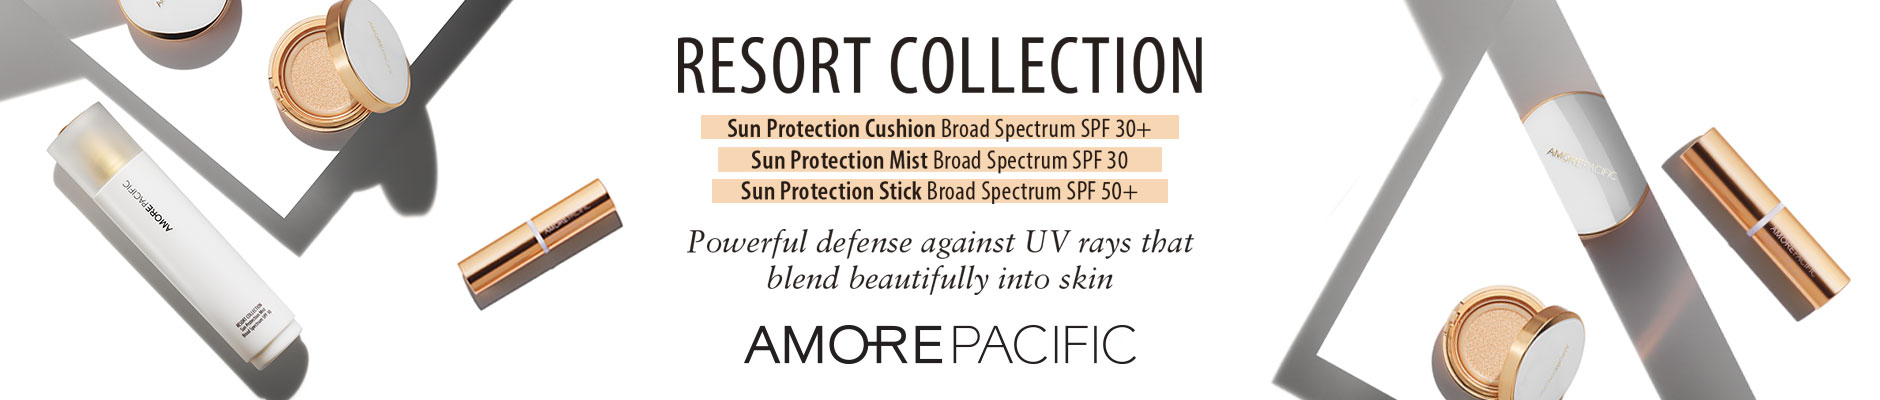 Resort Collection: Powerful defense against UV rays that blend beautifully into skin - Amore Pacific